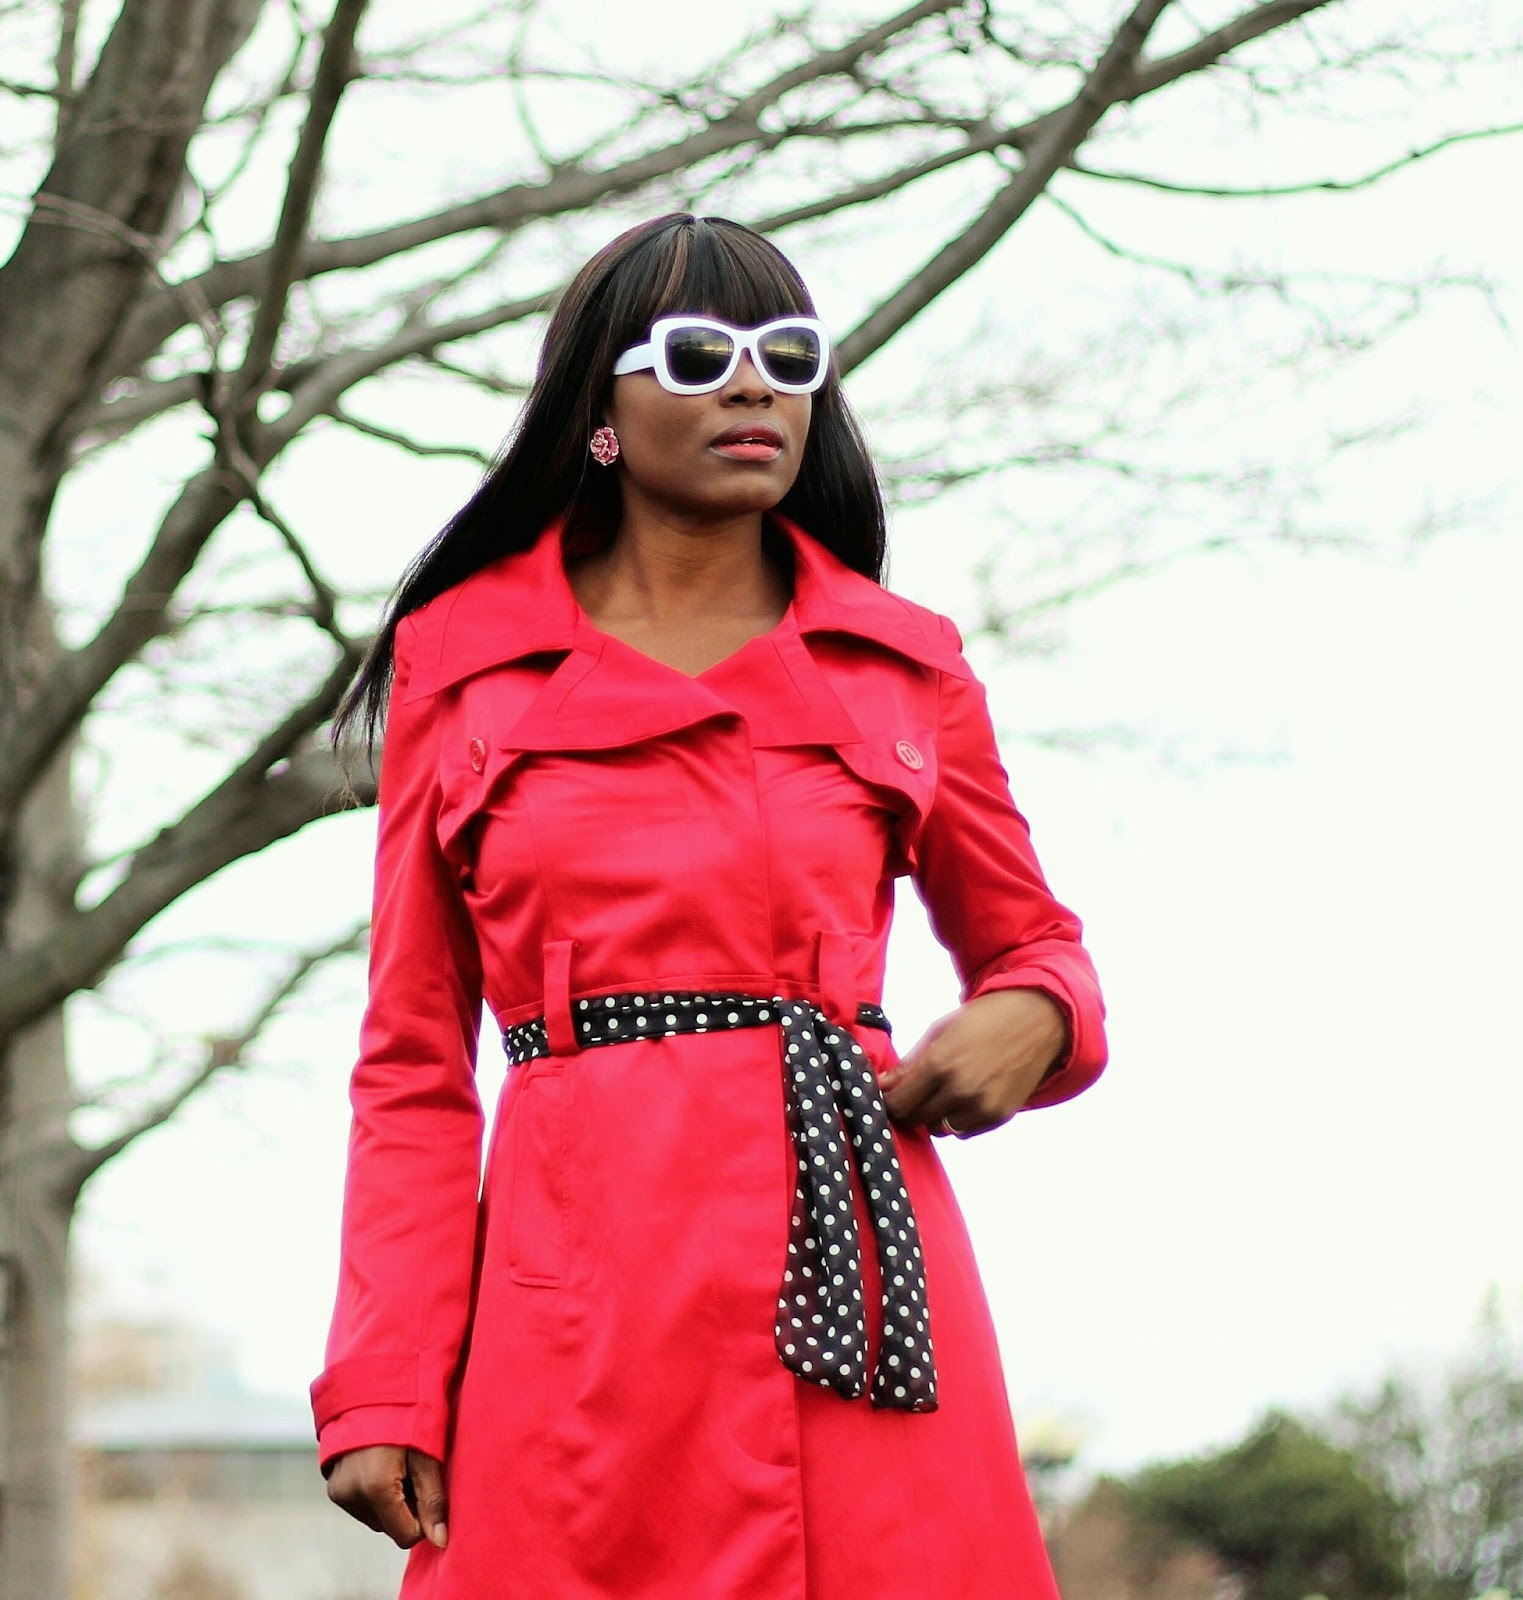 Wearing a belted coat using the Mia Beauty 3-in-1 Switch-a-Roo